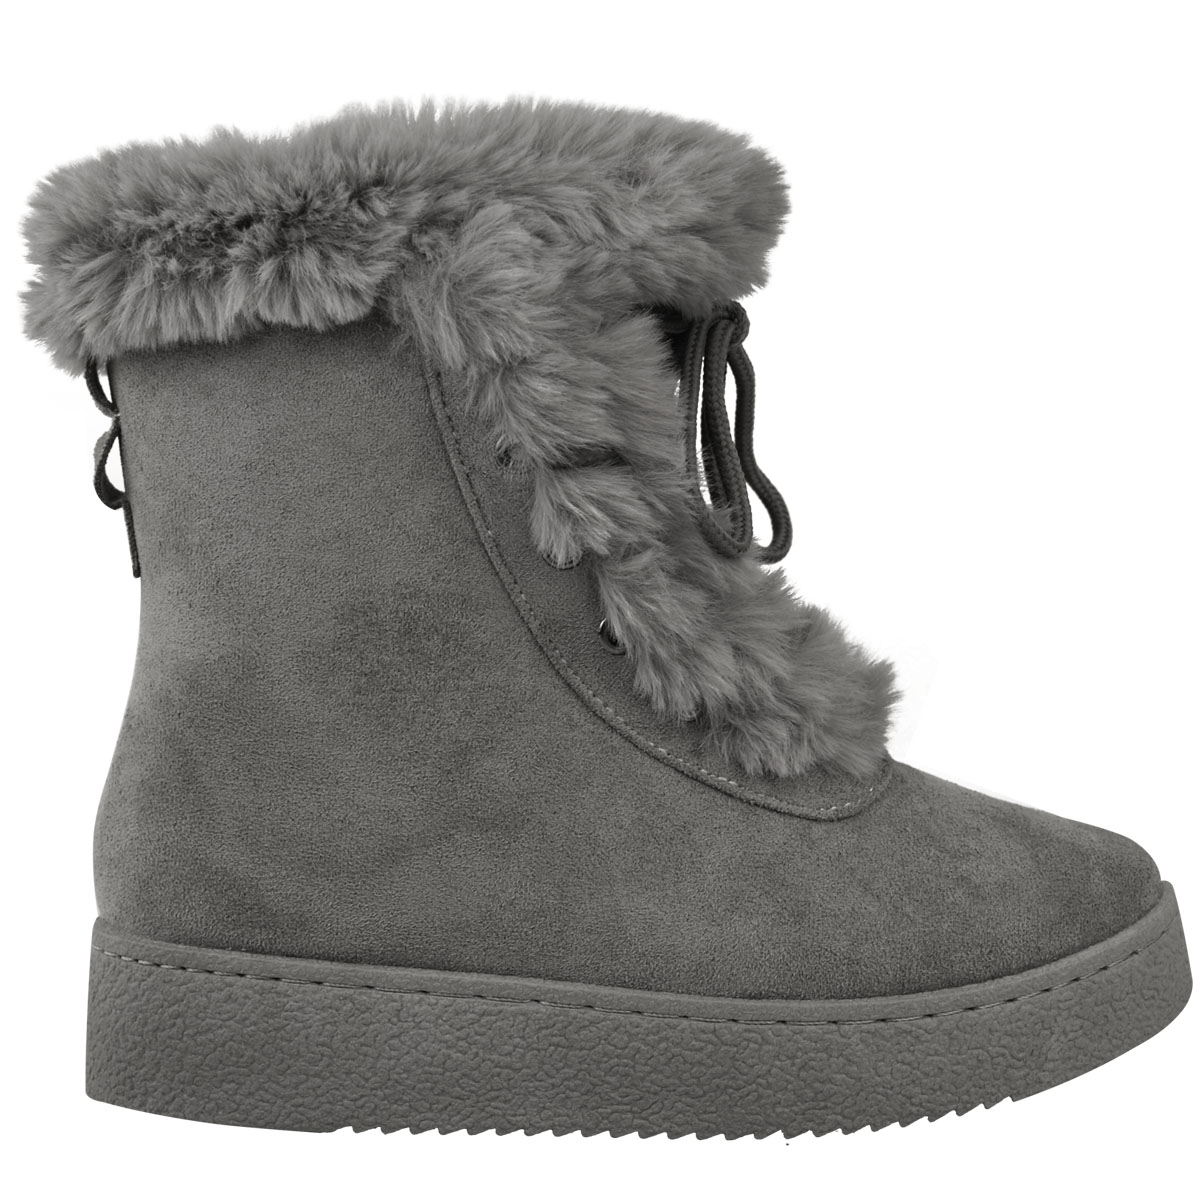 Free shipping BOTH ways on faux fur lined boots, from our vast selection of styles. Fast delivery, and 24/7/ real-person service with a smile. Click or call